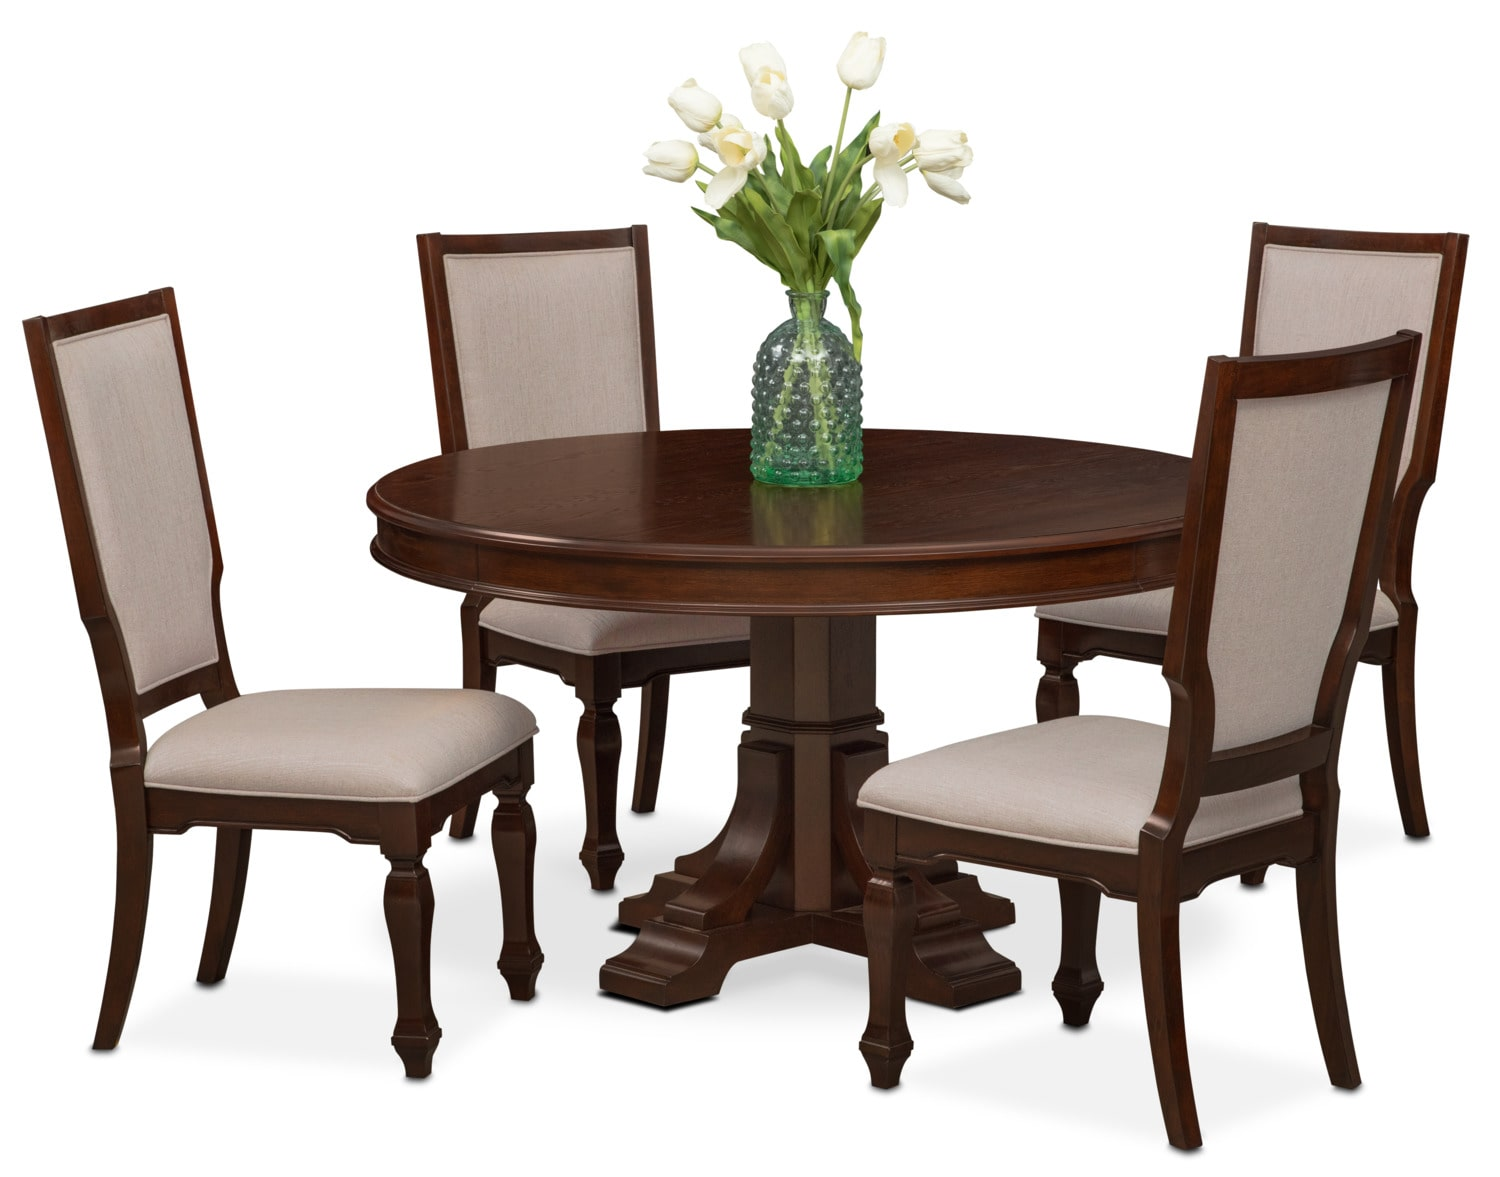 Vienna Round Dining Table And 4 Upholstered Side Chairs   Merlot